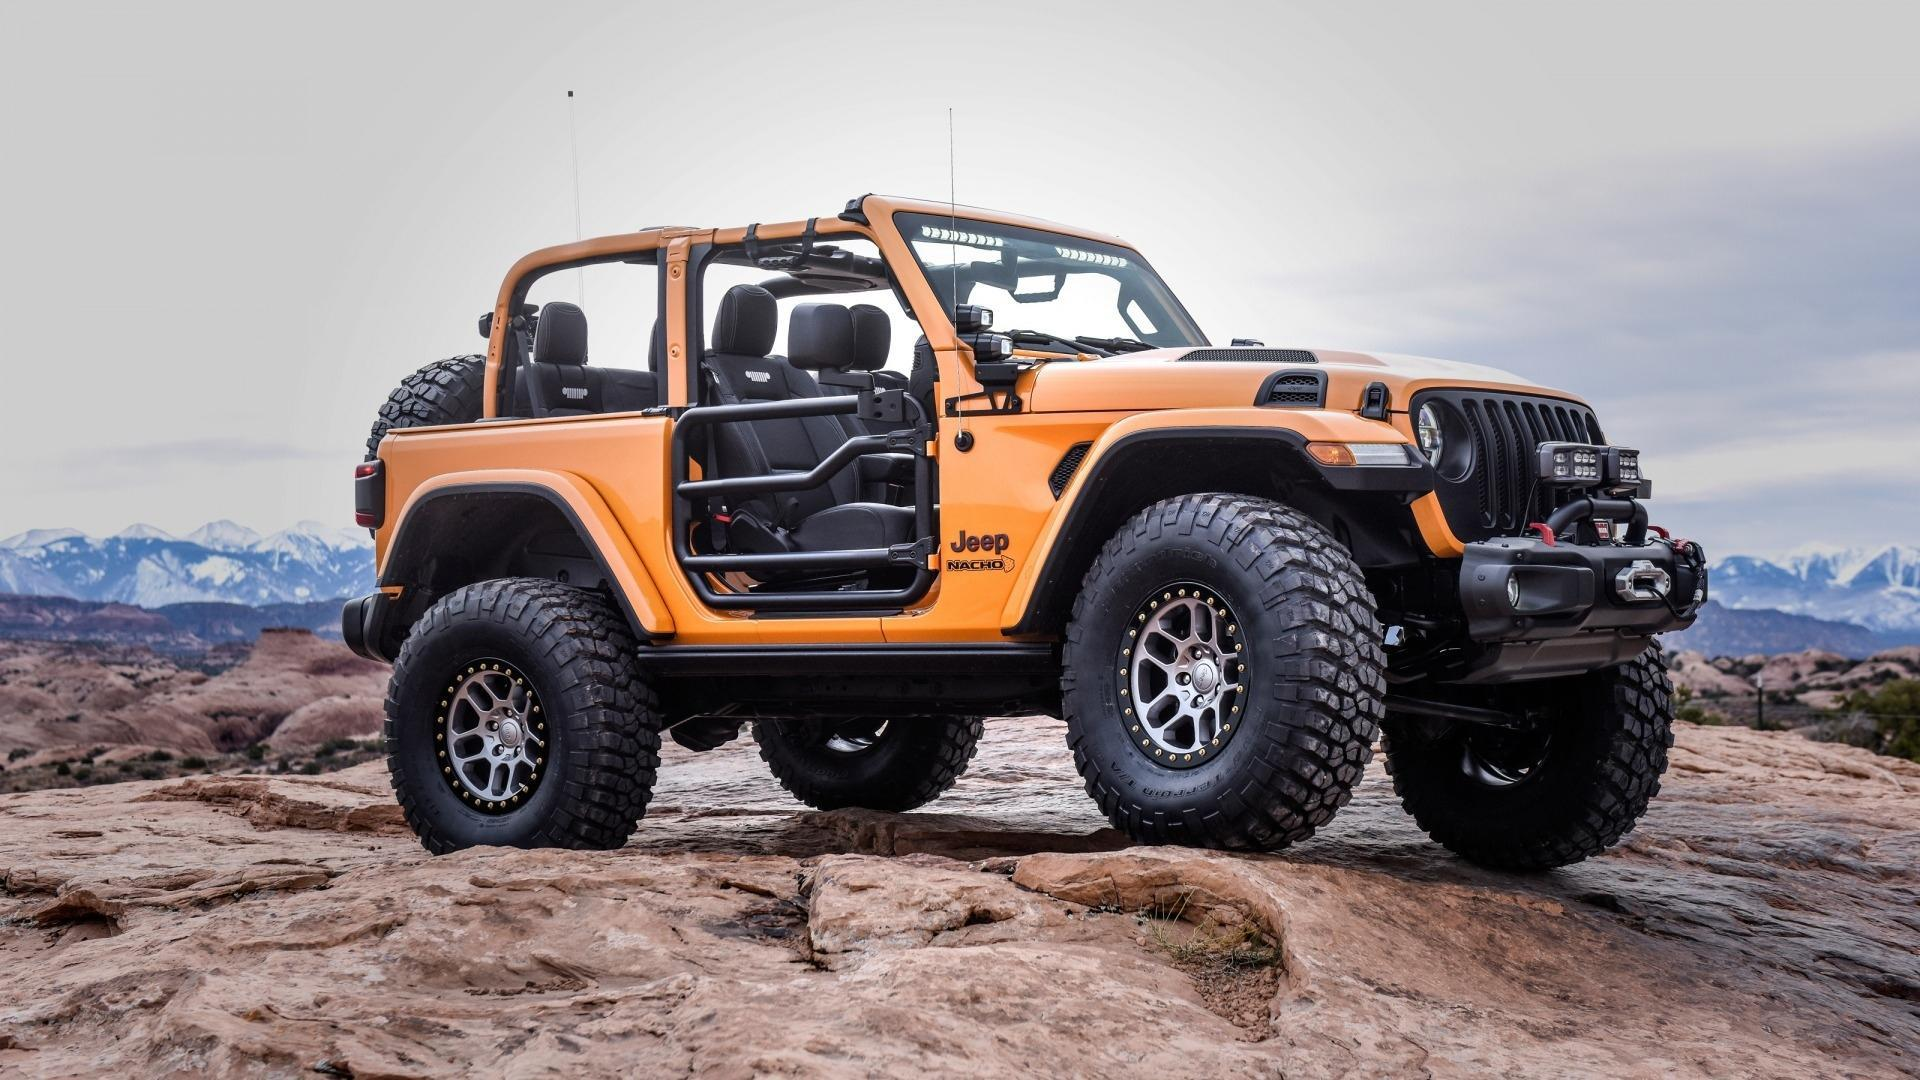 Inherit The Hardline Off-Road Style - Jeep brand history